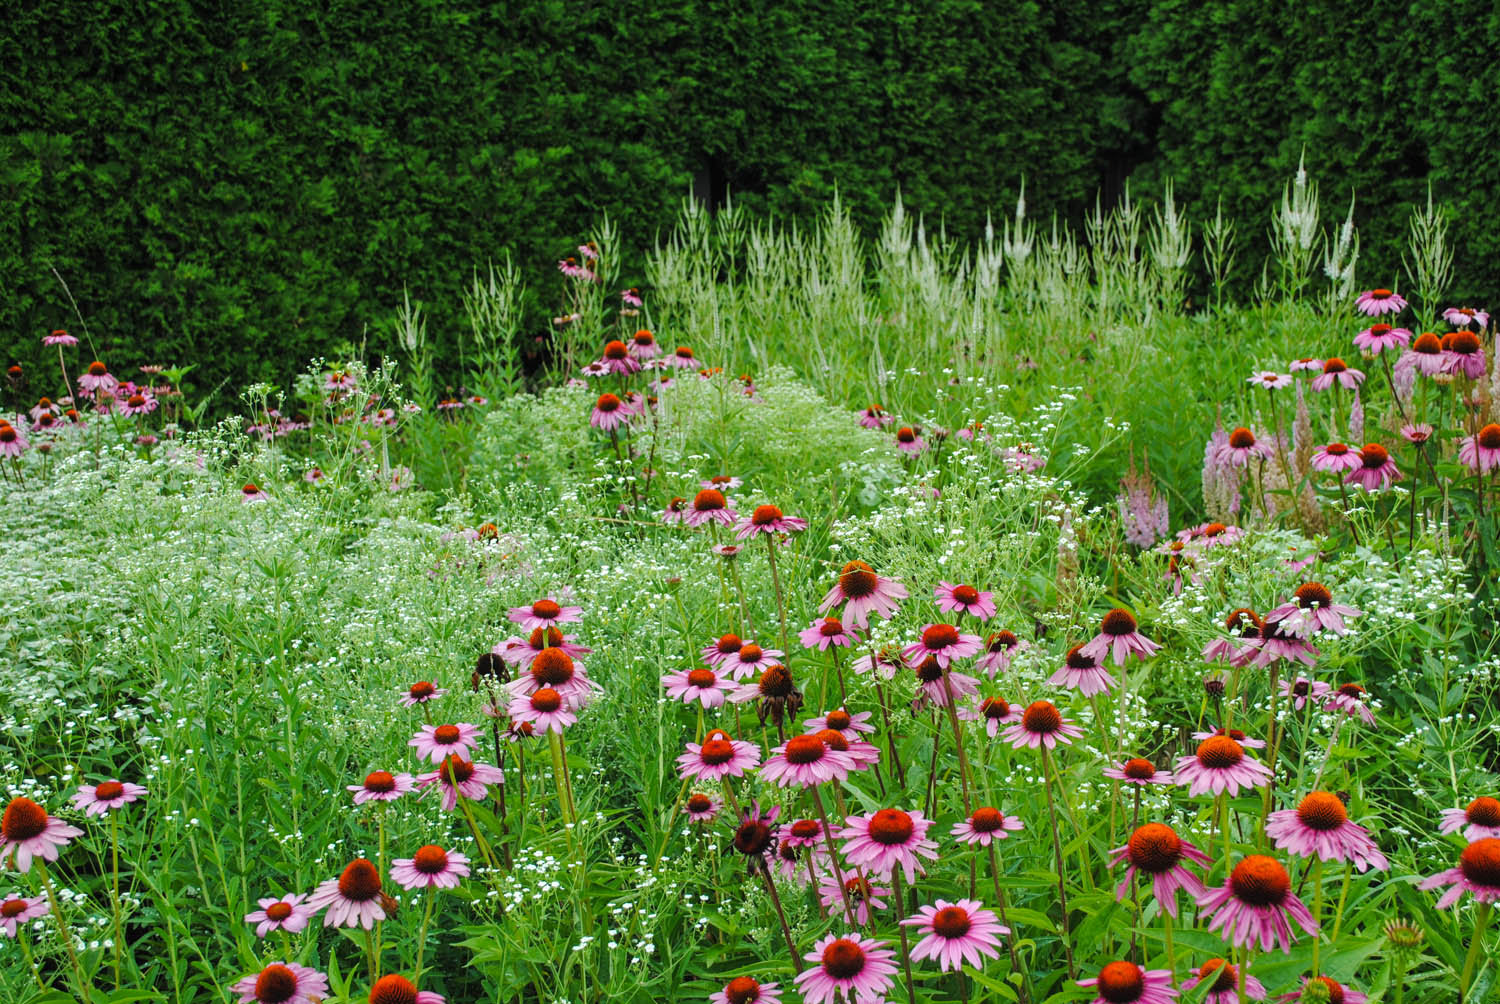 The  Echinacea  provides such a good color accent with the white  Veronicastrum  and  Euphorbia .